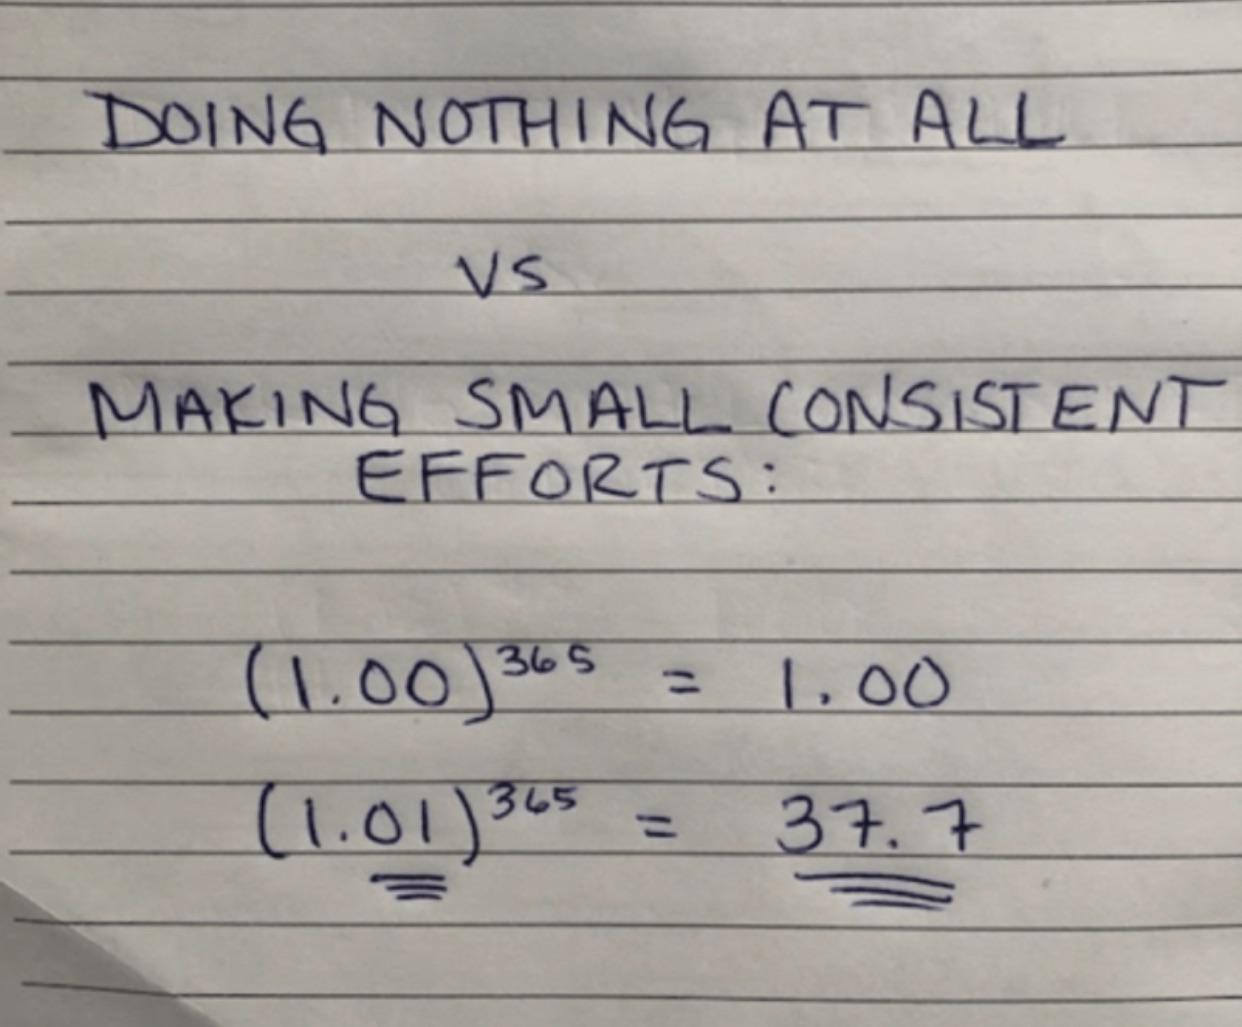 [IMAGE] Small efforts count! Do something, anything.